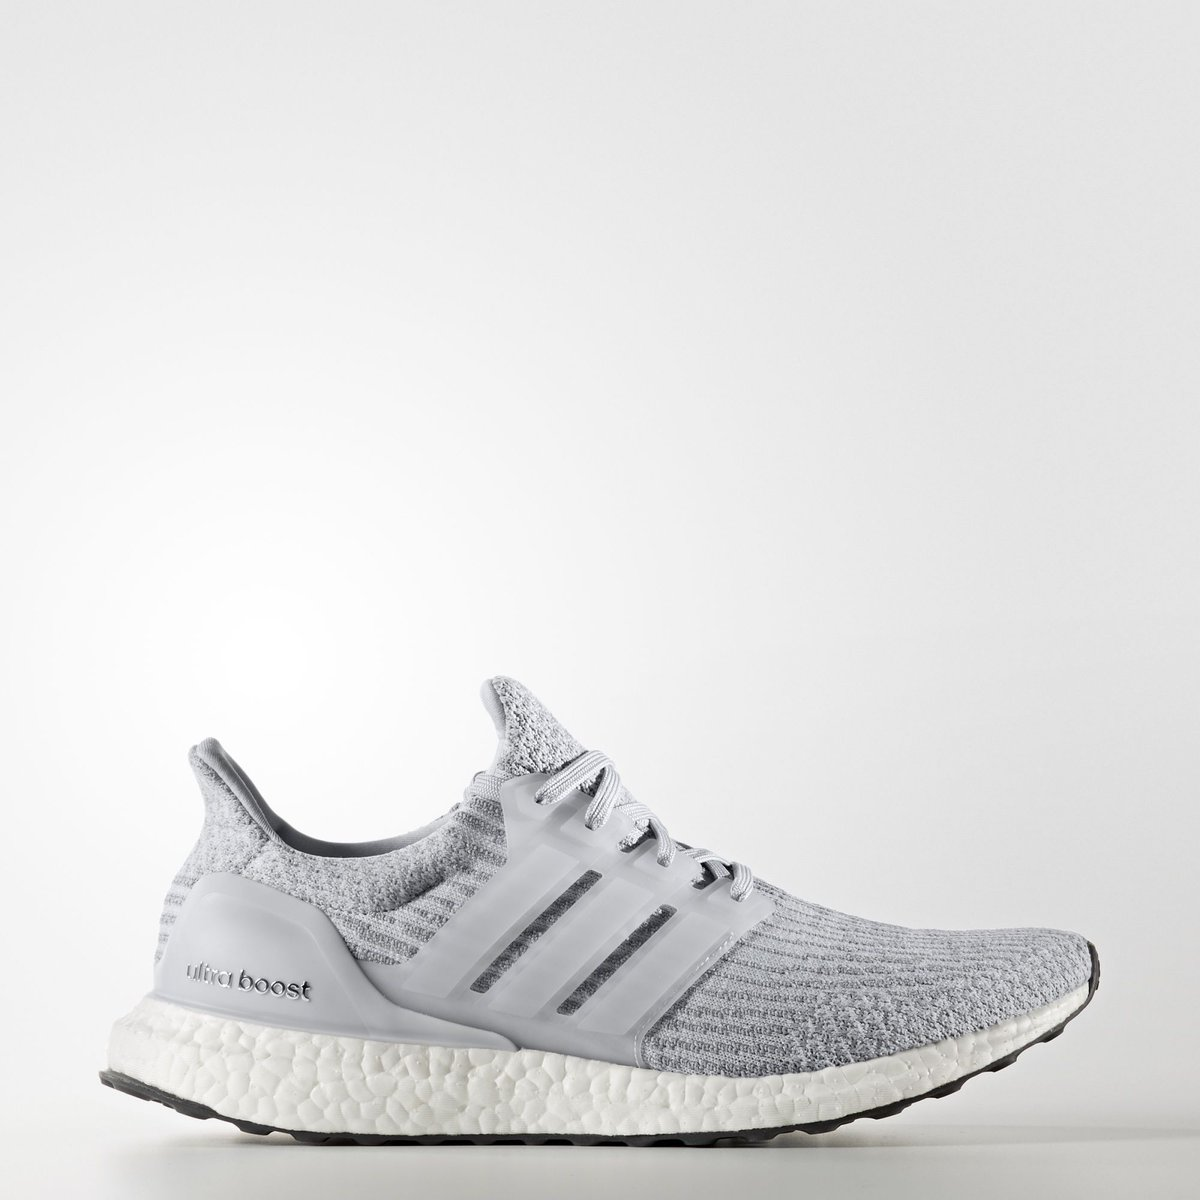 Ultra 3.0 Boost, Cheap Adidas Ultra 3.0 Shoes Sale 2017